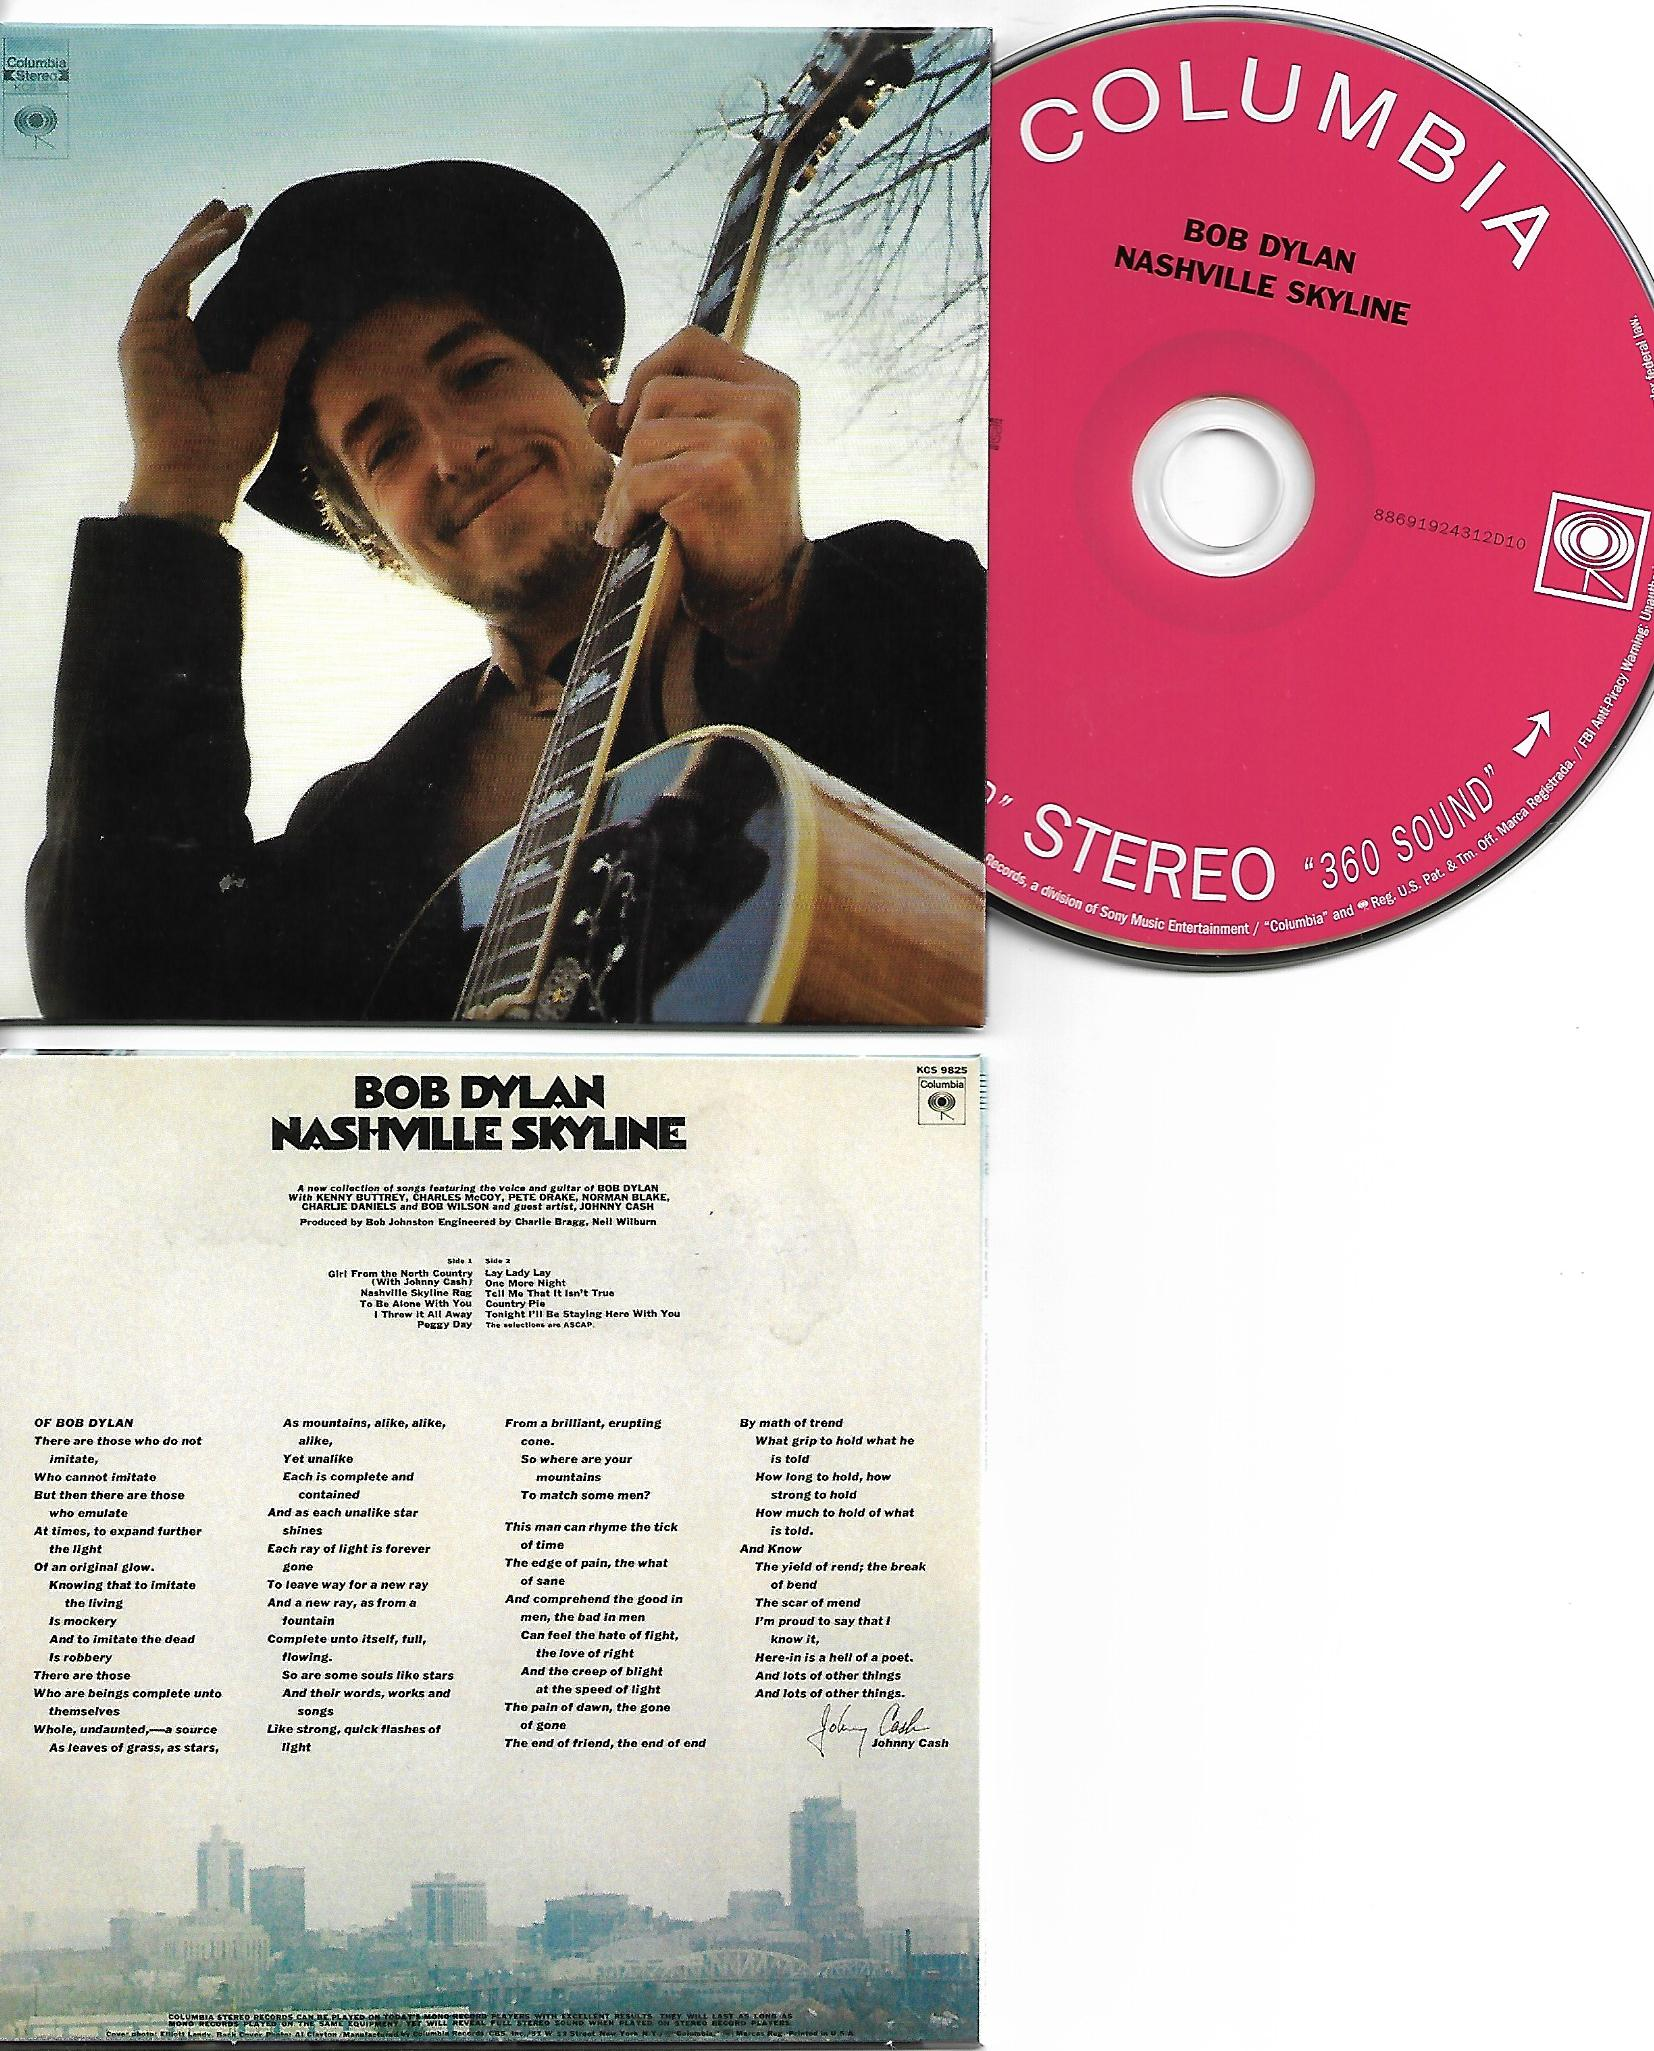 BOB DYLAN - Nashville Skyline 1969 - MINI LP REPLICA CARD BOARD SLEEVE - CD